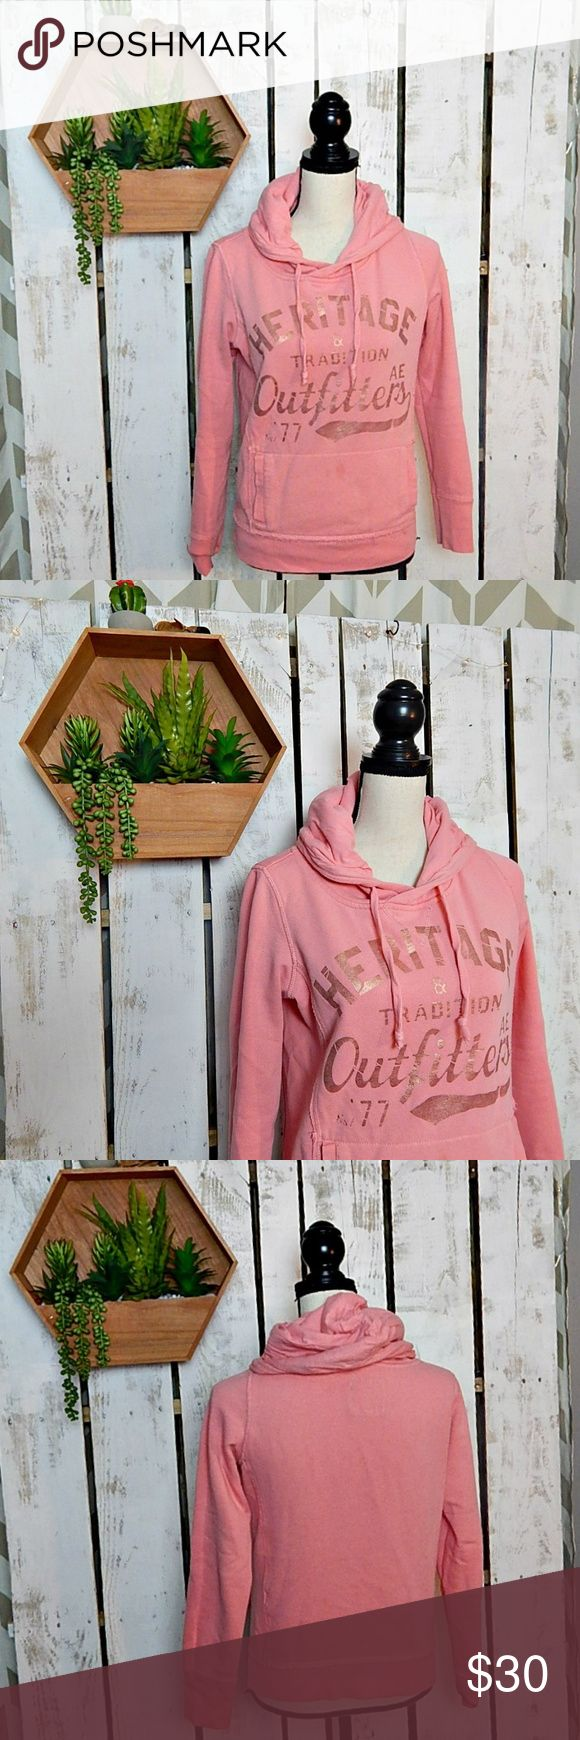 Pink American Eagle Hoodie Pink american eagle hoodie with gold lettering Pocket in the front. American Eagle Outfitters Tops Sweatshirts & Hoodies